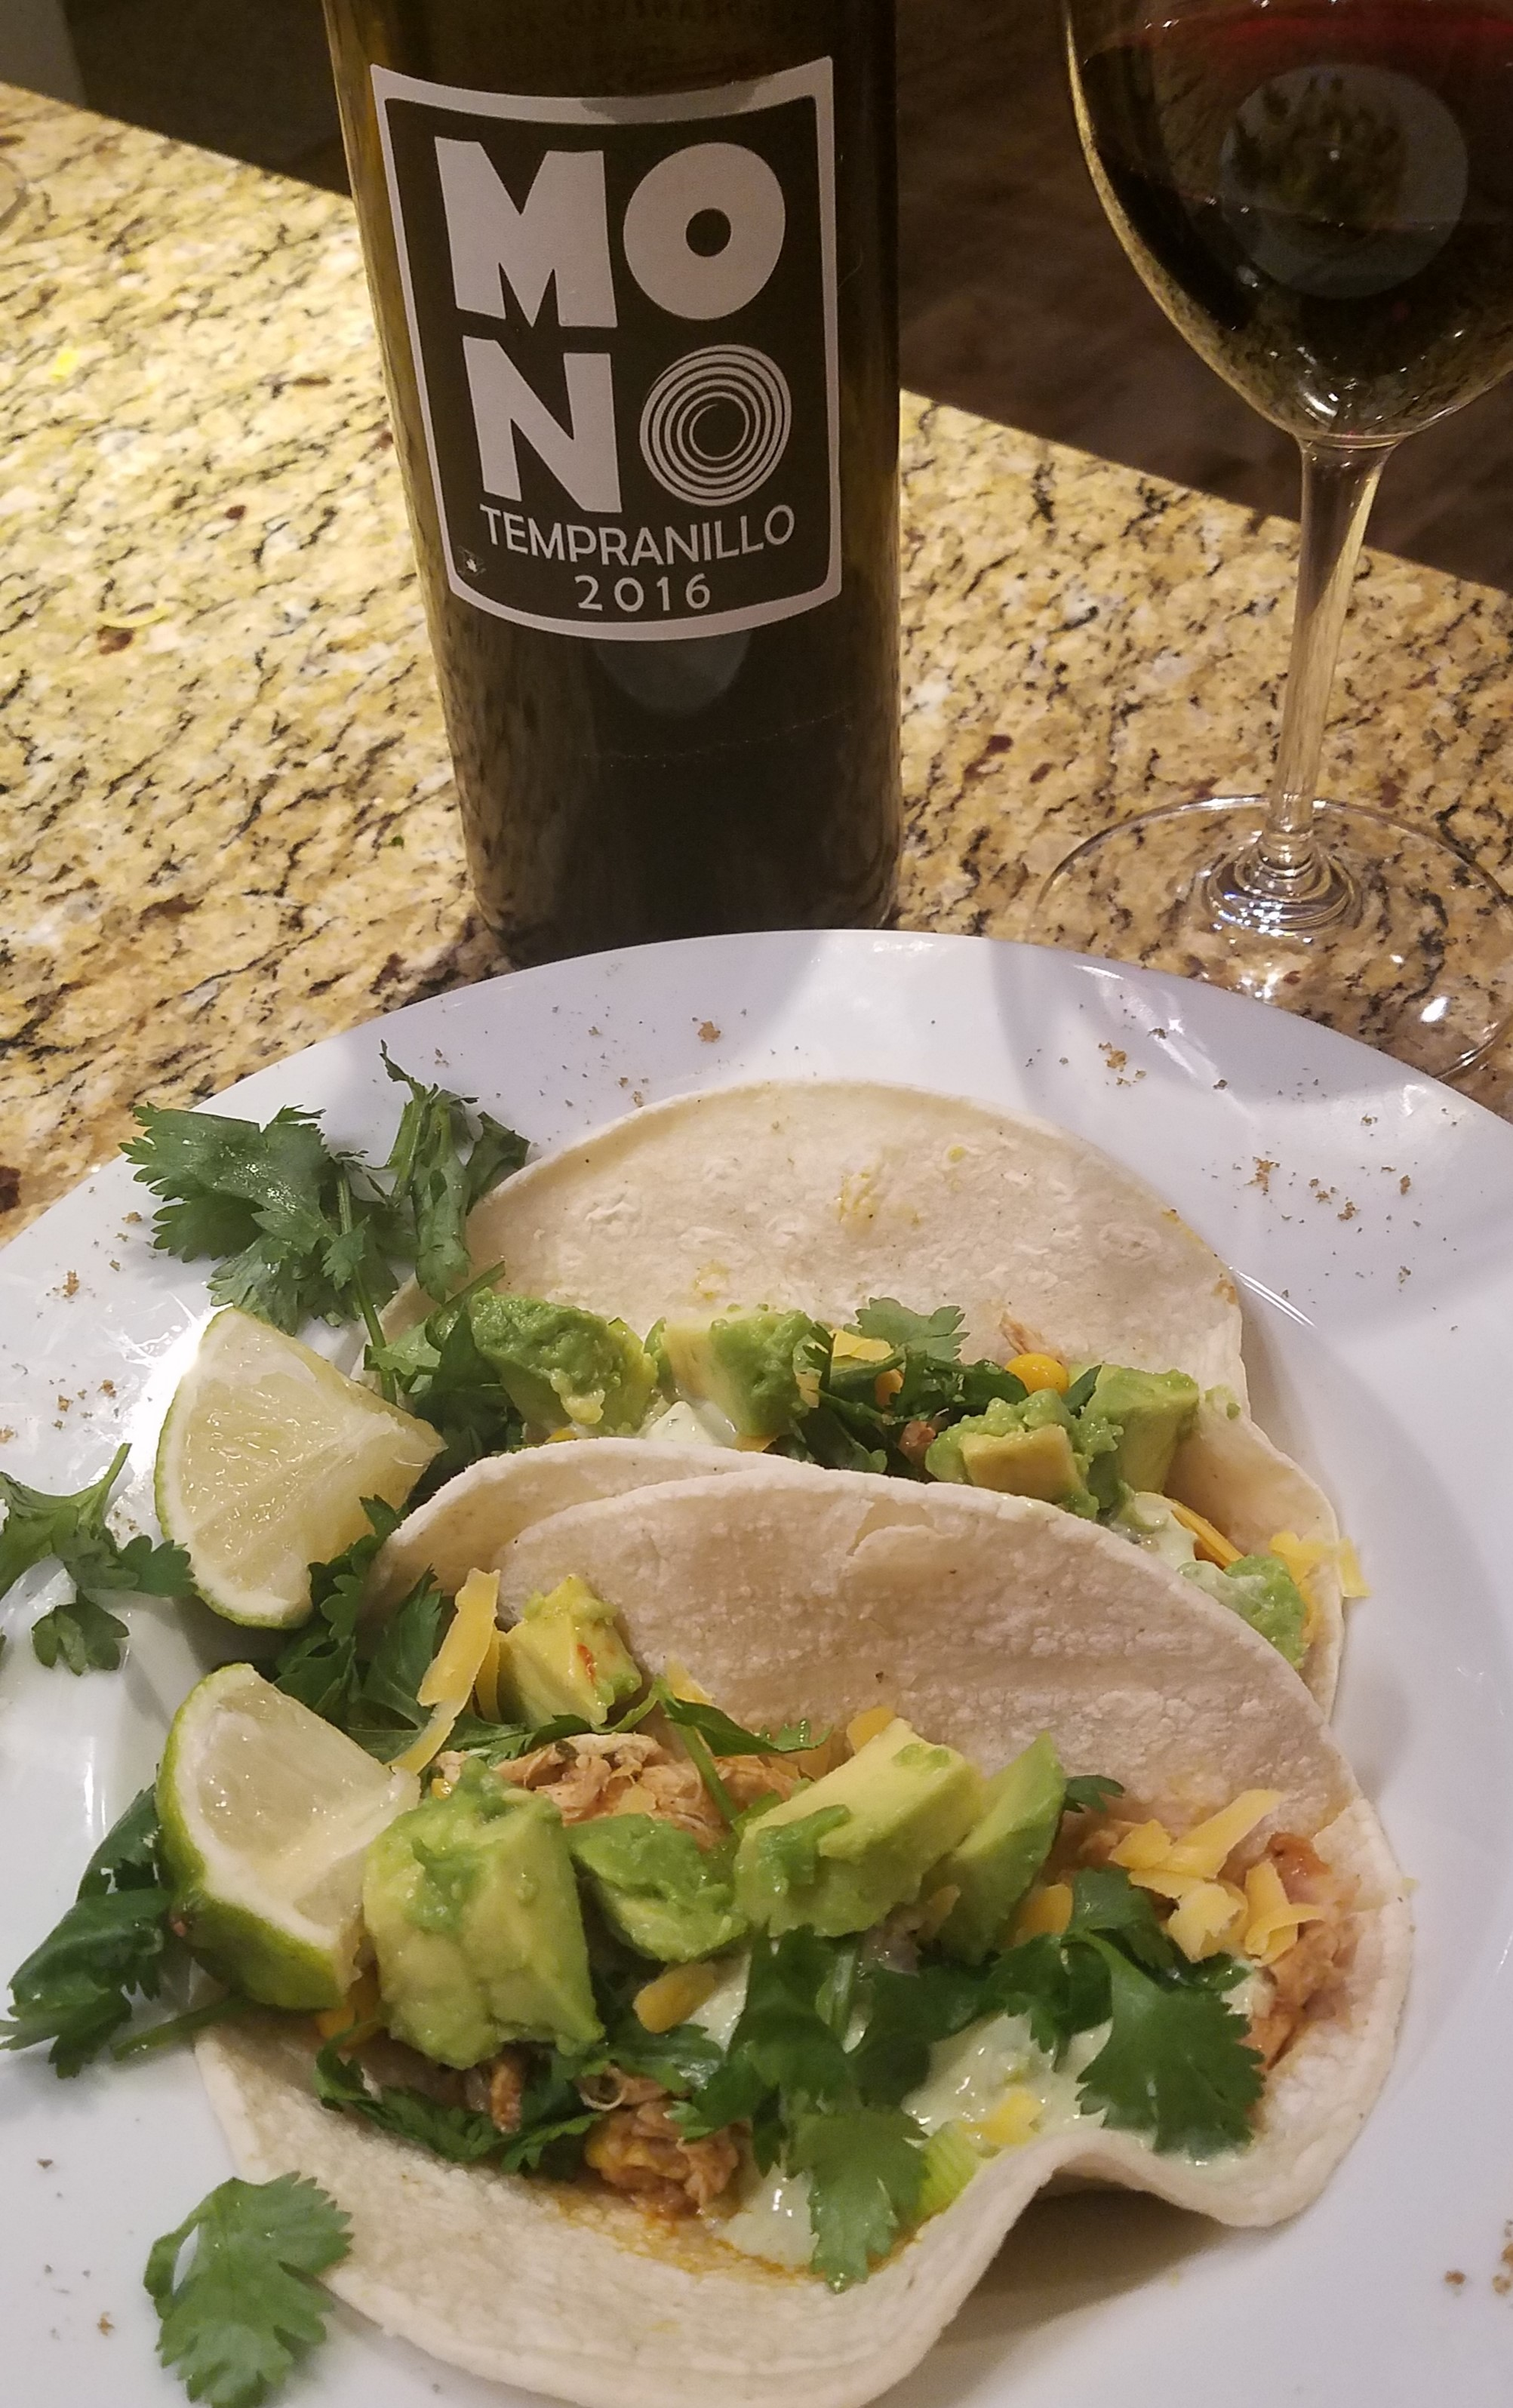 Shredded Chicken Street Tacos paired with Mono Tempranillo